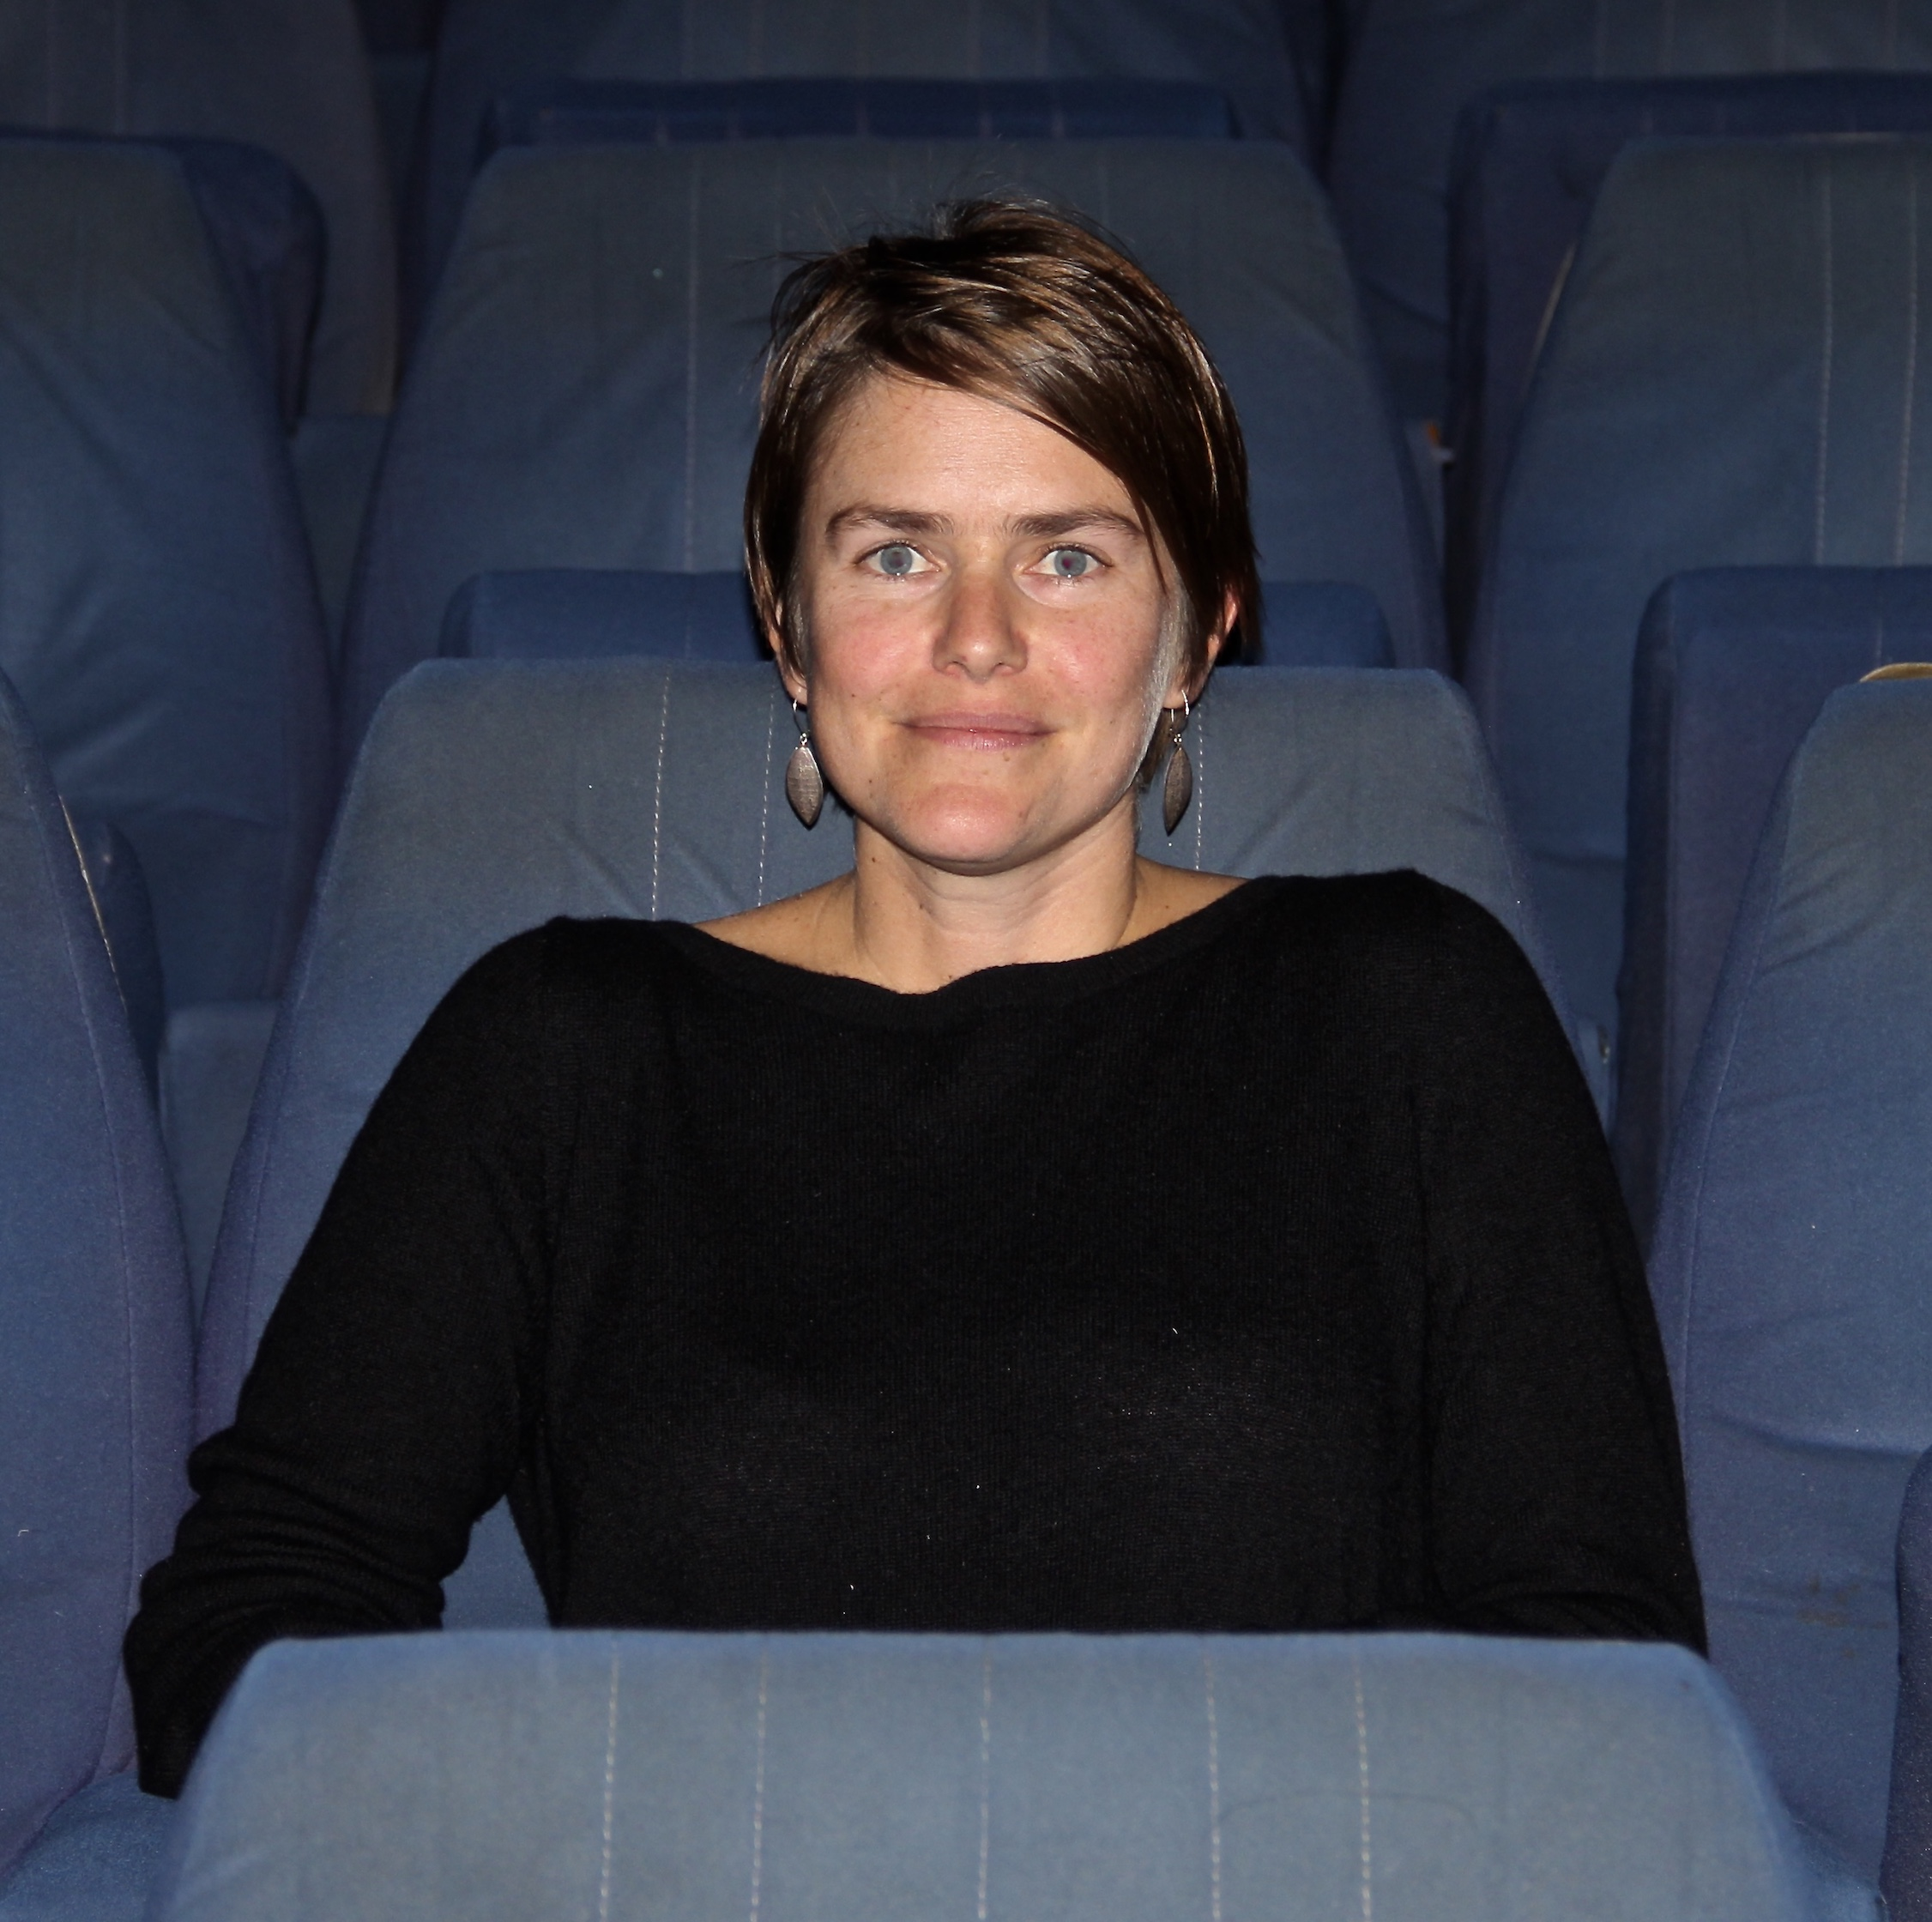 Director Juliana Fanjul